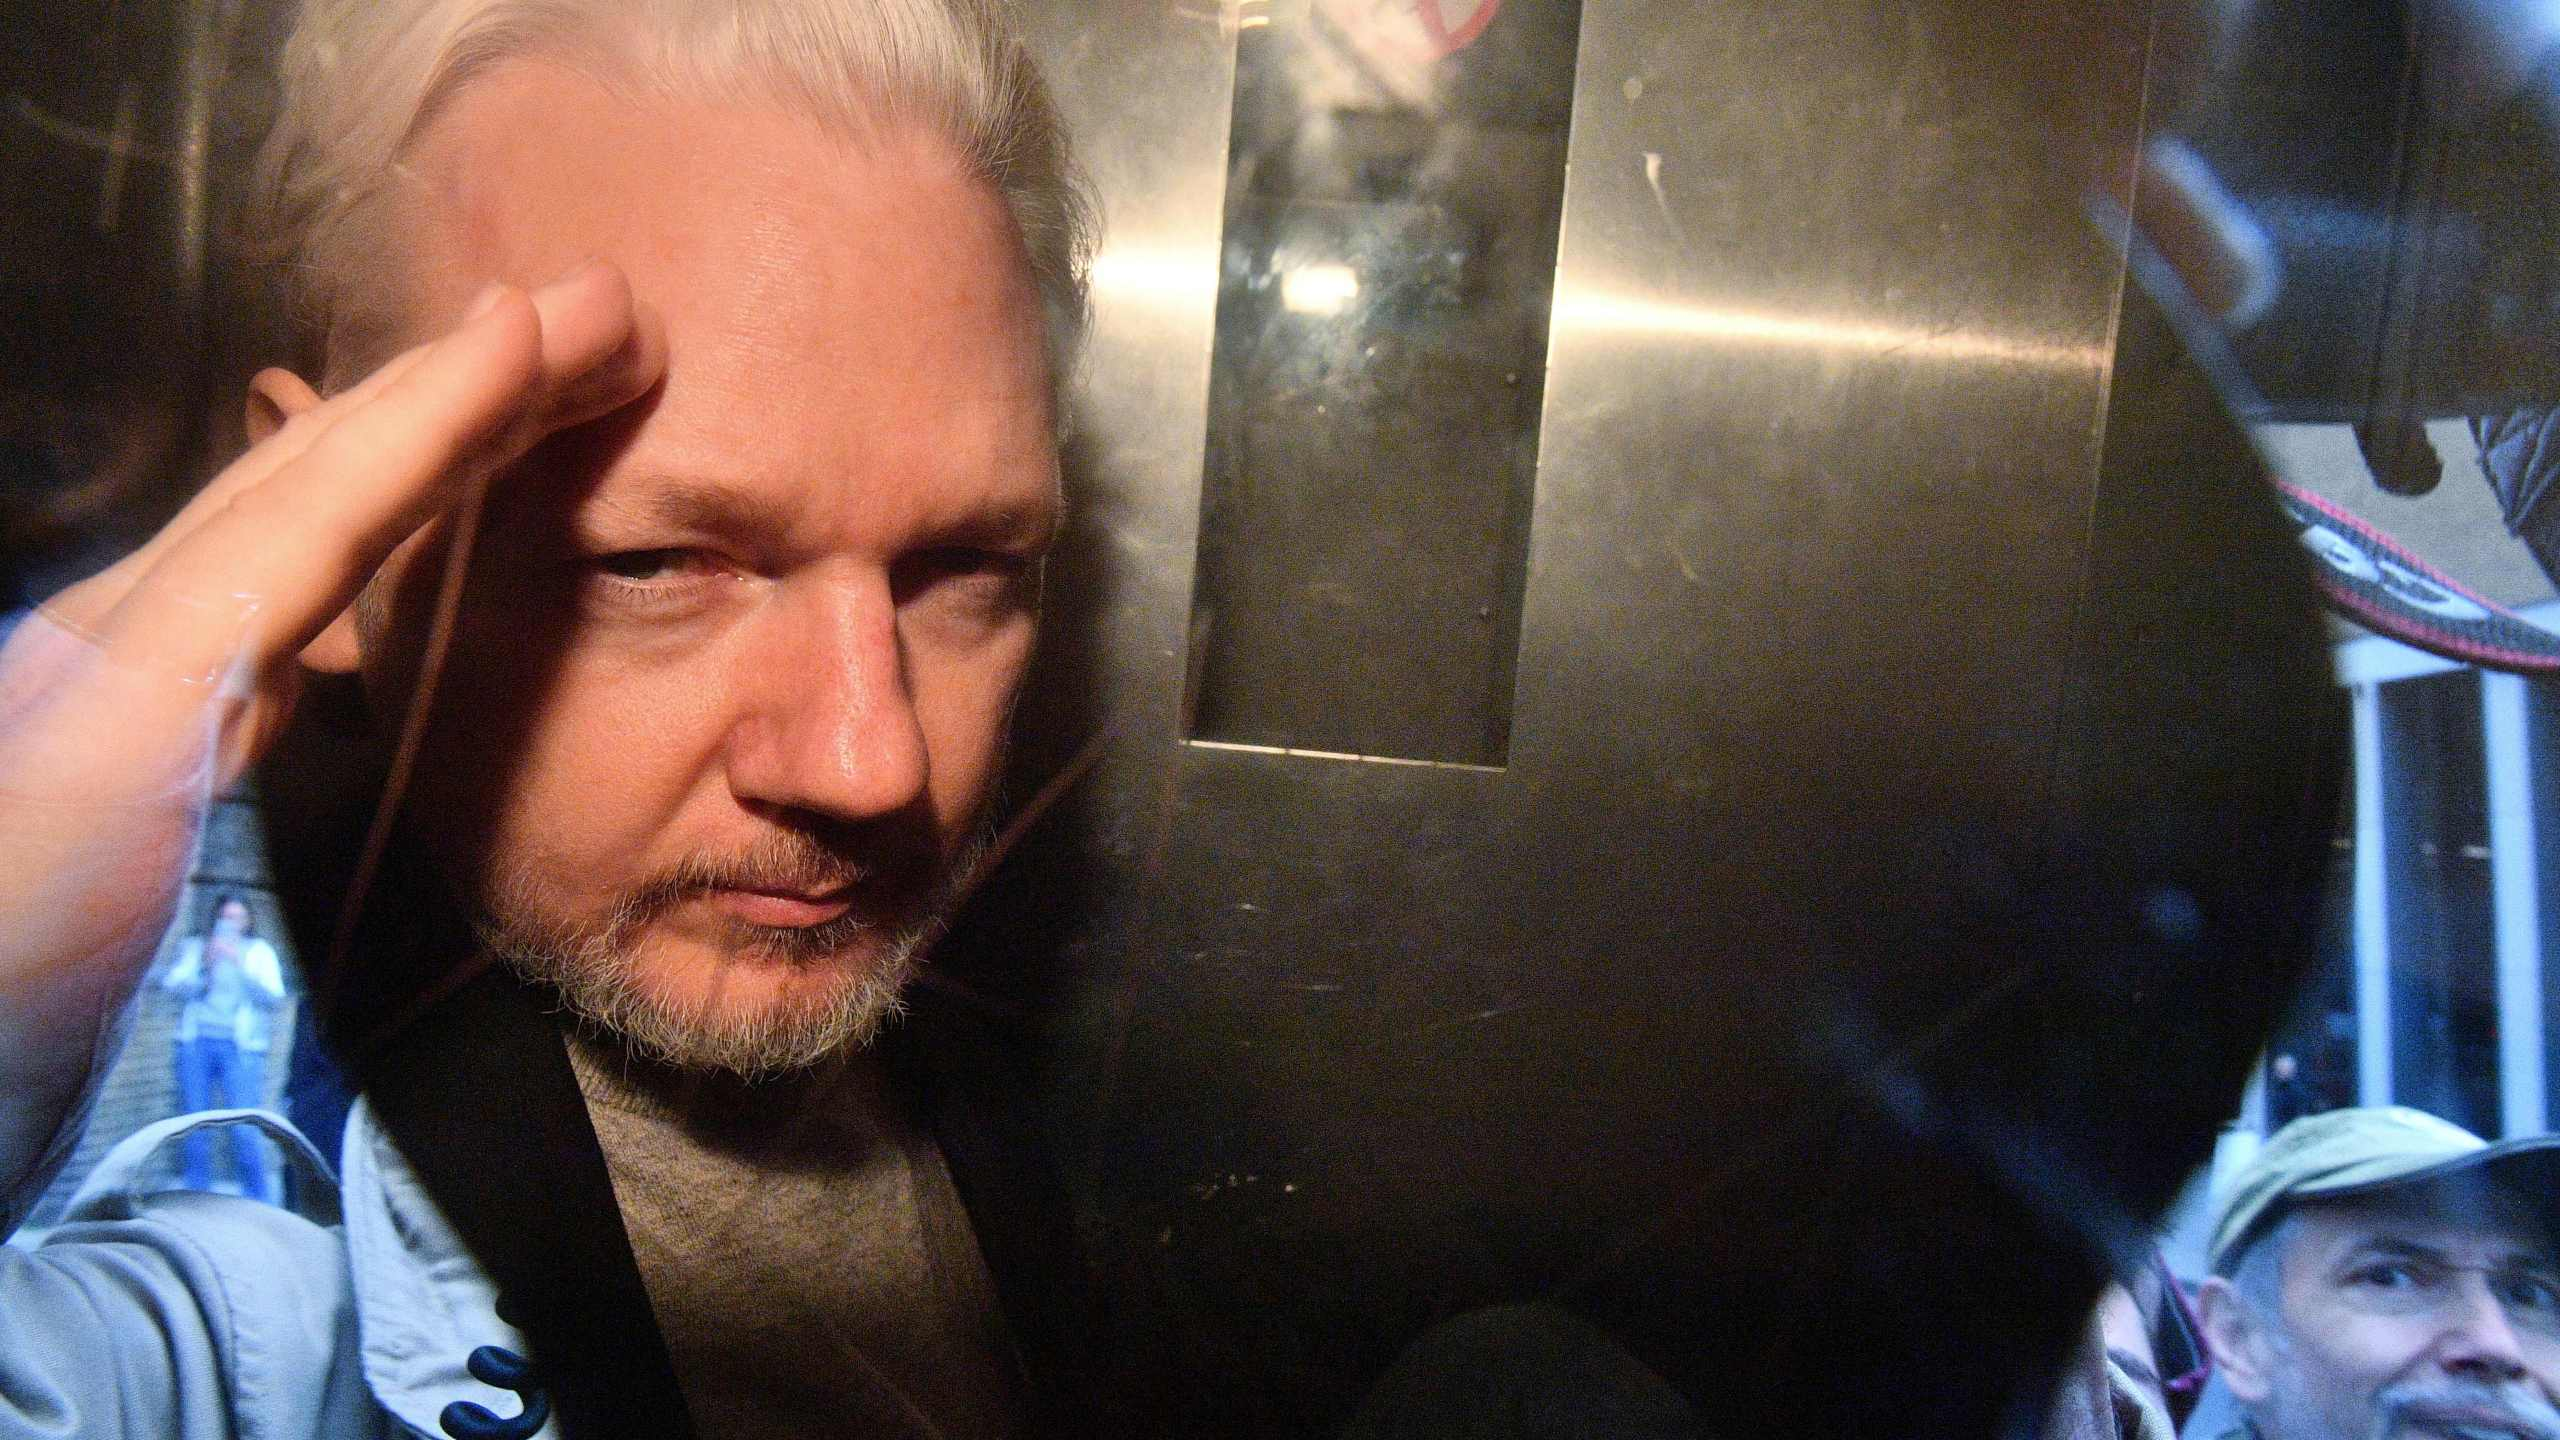 WikiLeaks founder Julian Assange gestures from the window of a prison van as he is driven out of Southwark Crown Court in London on May 1, 2019. (Credit: DANIEL LEAL-OLIVAS/AFP via Getty Images)